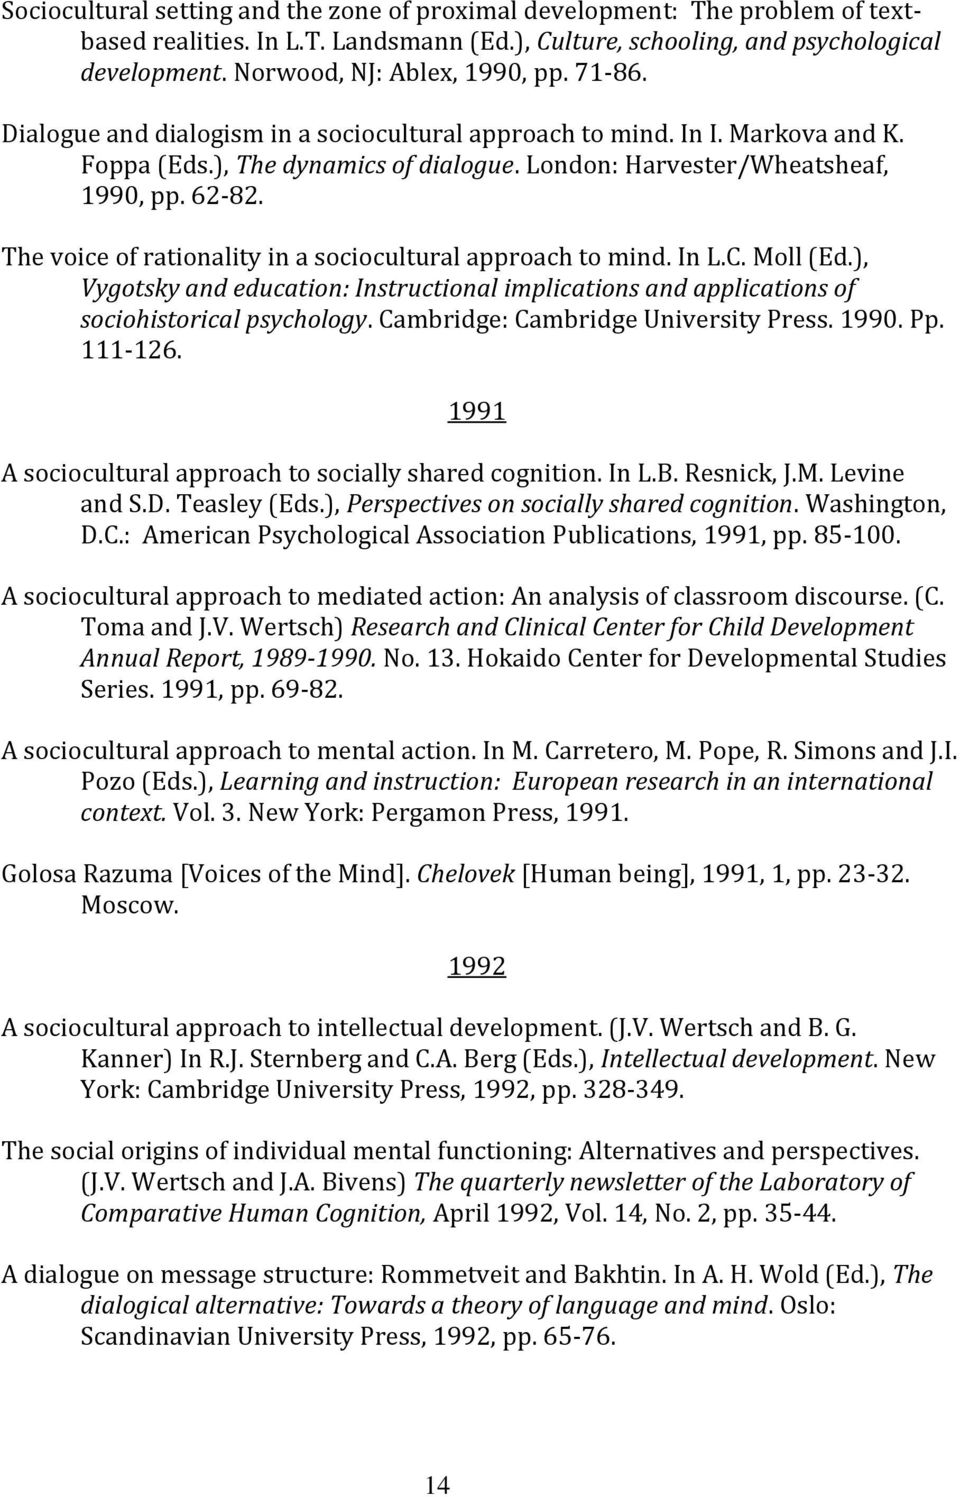 62-82. The voice of rationality in a sociocultural approach to mind. In L.C. Moll (Ed.), Vygotsky and education: Instructional implications and applications of sociohistorical psychology.